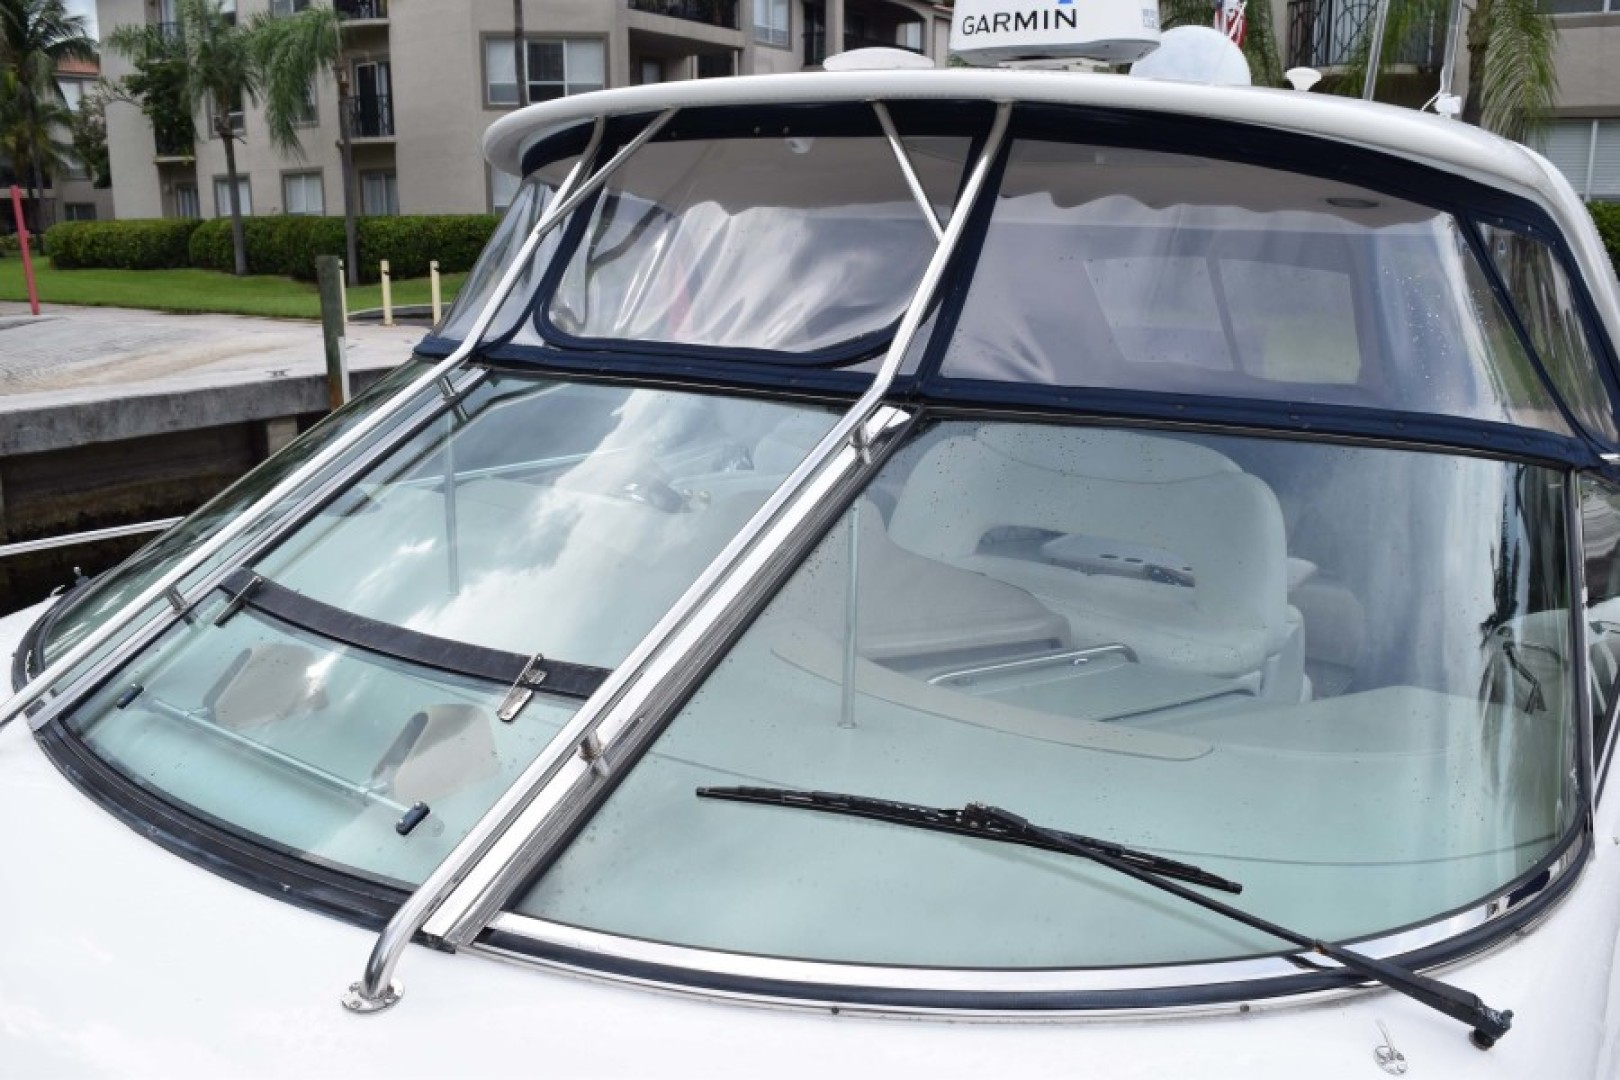 Sea Ray-460 Sundancer 2002-The Payoff Key Biscayne-Florida-United States-Isinglass and Windchield Detail-1569329 | Thumbnail